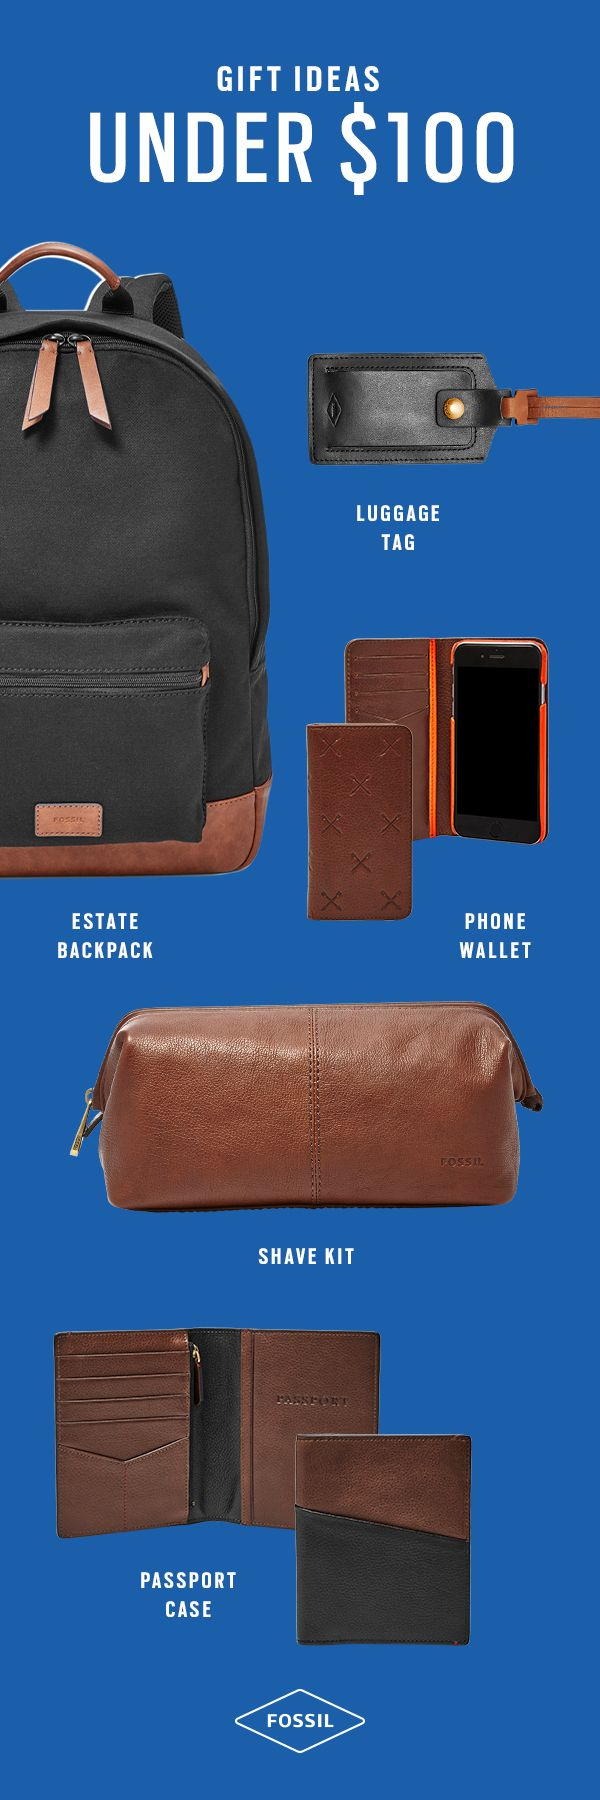 Our top 5 must-have gifts under $100 to give him this year—think leather wallets, passport cases, a personalized luggage tag, backpacks and shave kits. Perfect for a tech-savvy dad, husband or brother!